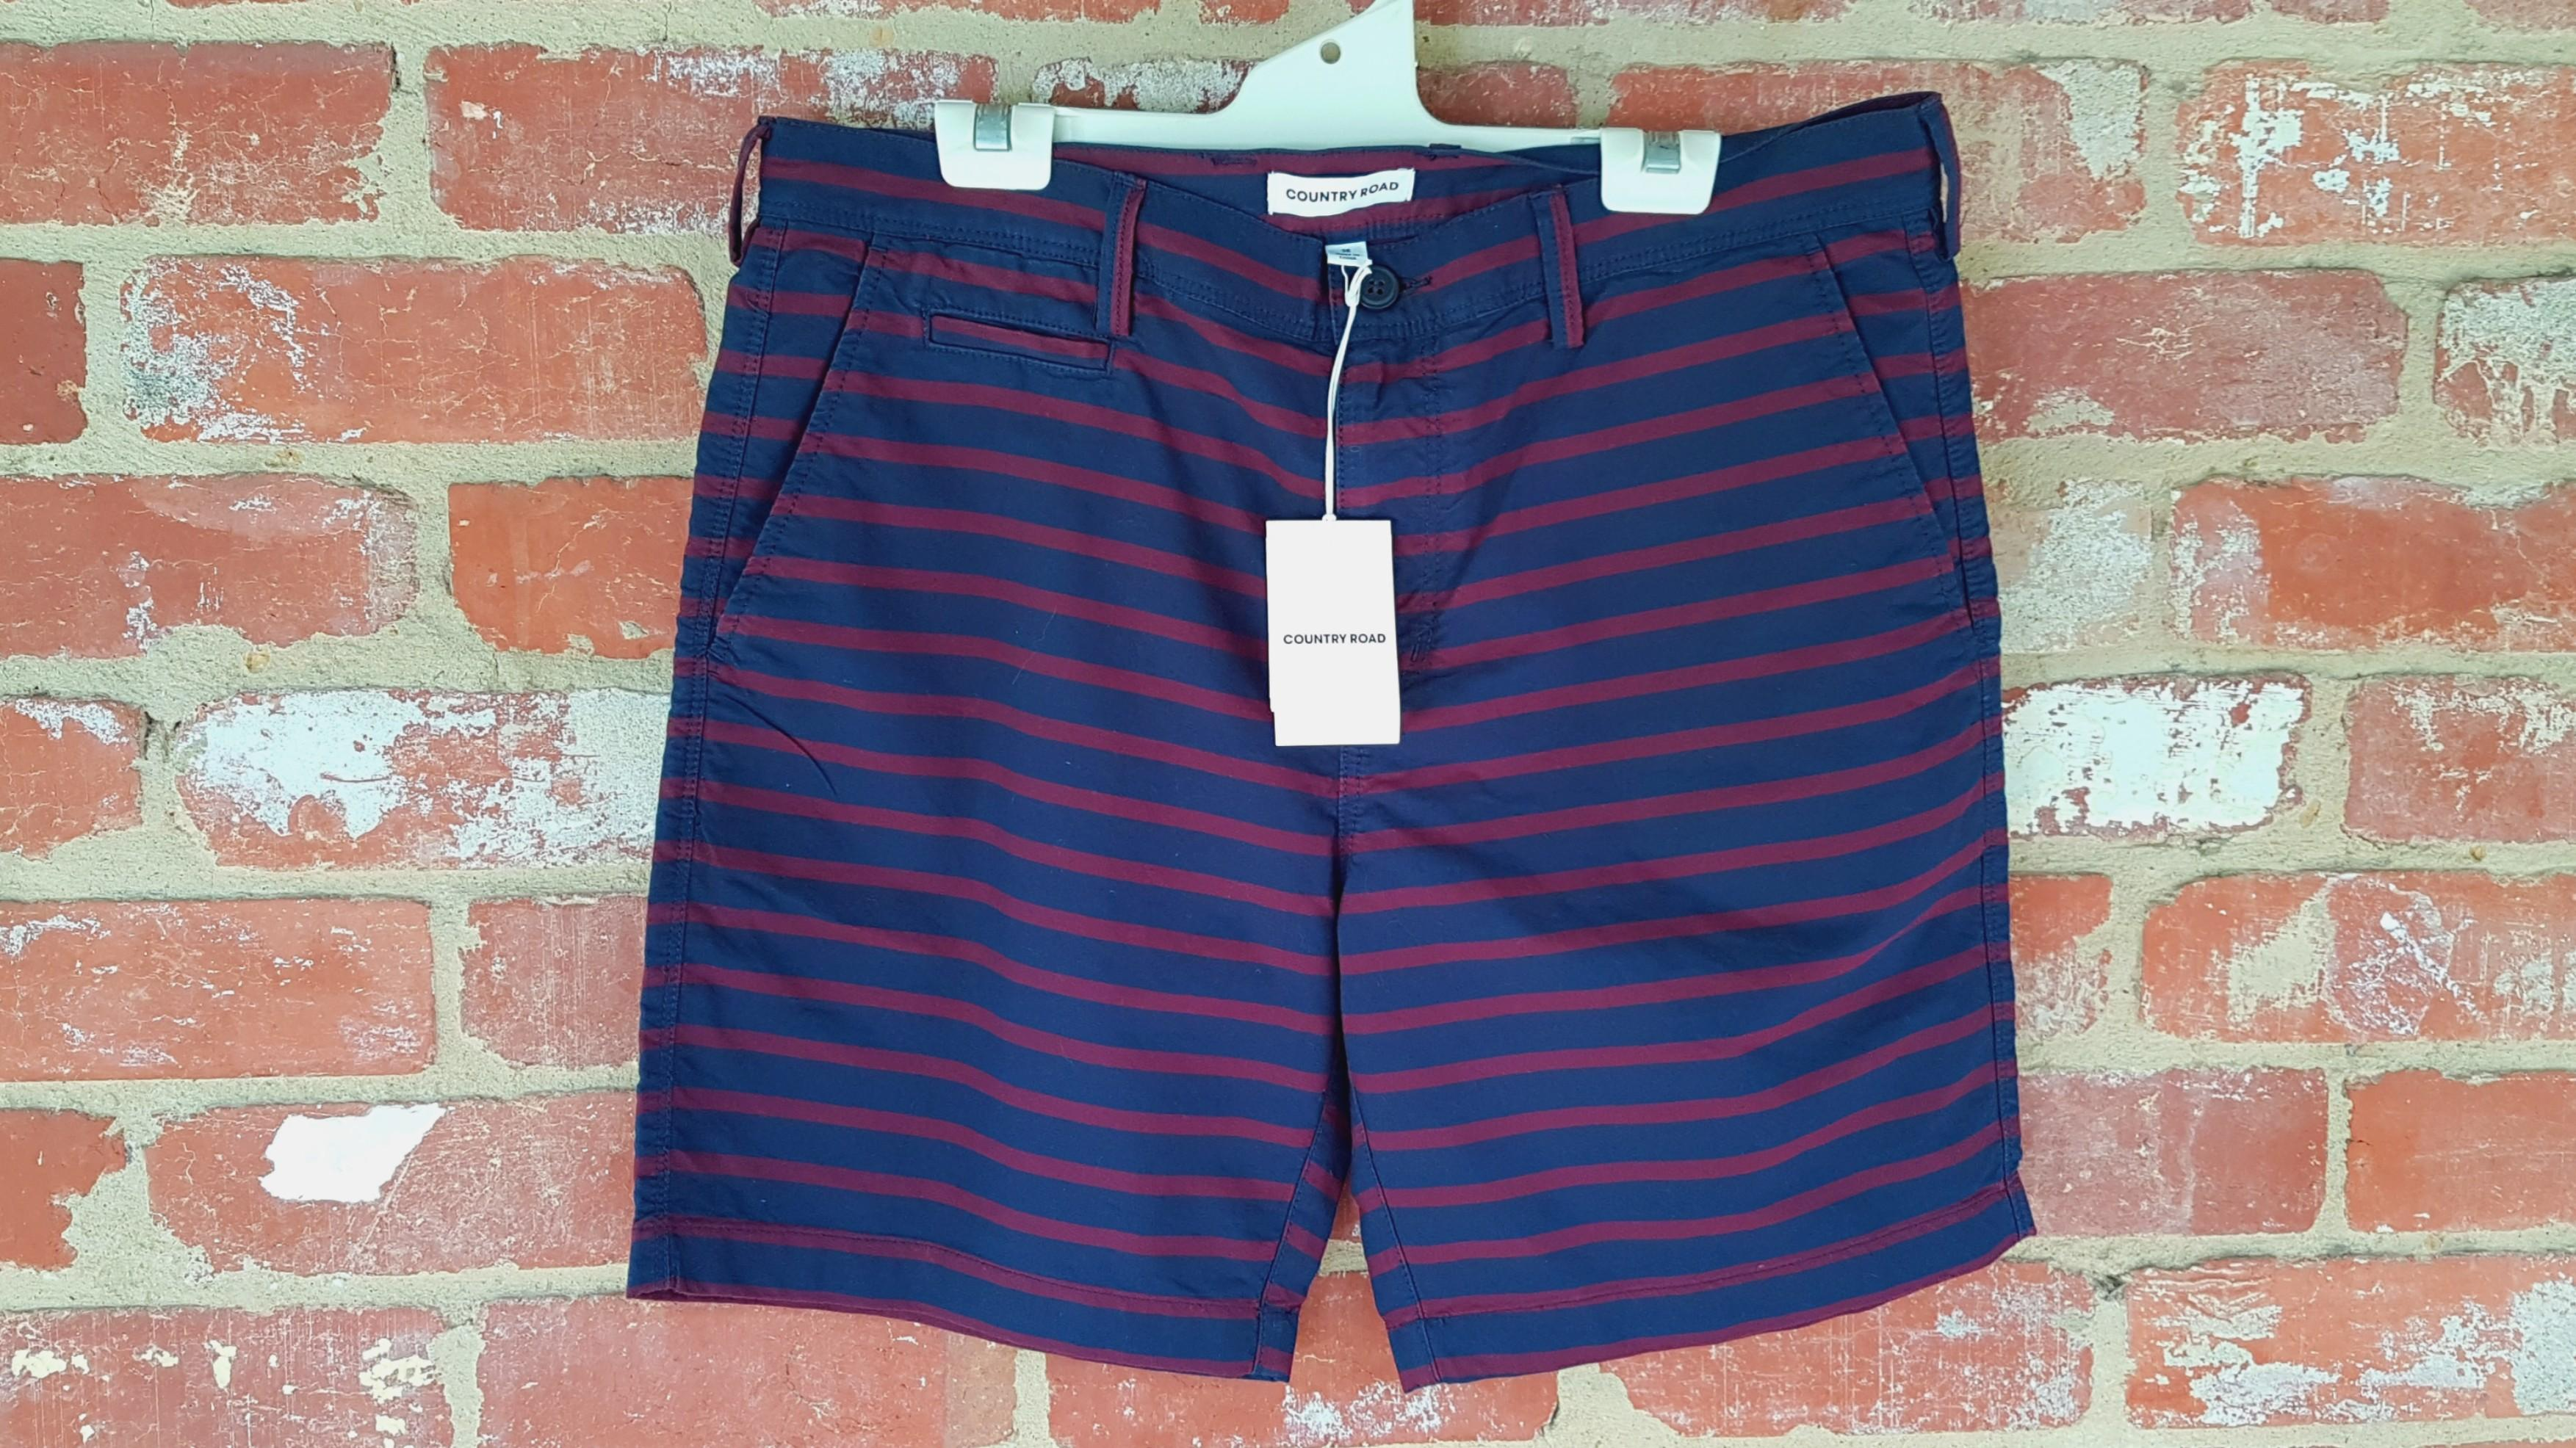 BNWT Country Road Chino Shorts 36 Navy/Burgundy Stripes